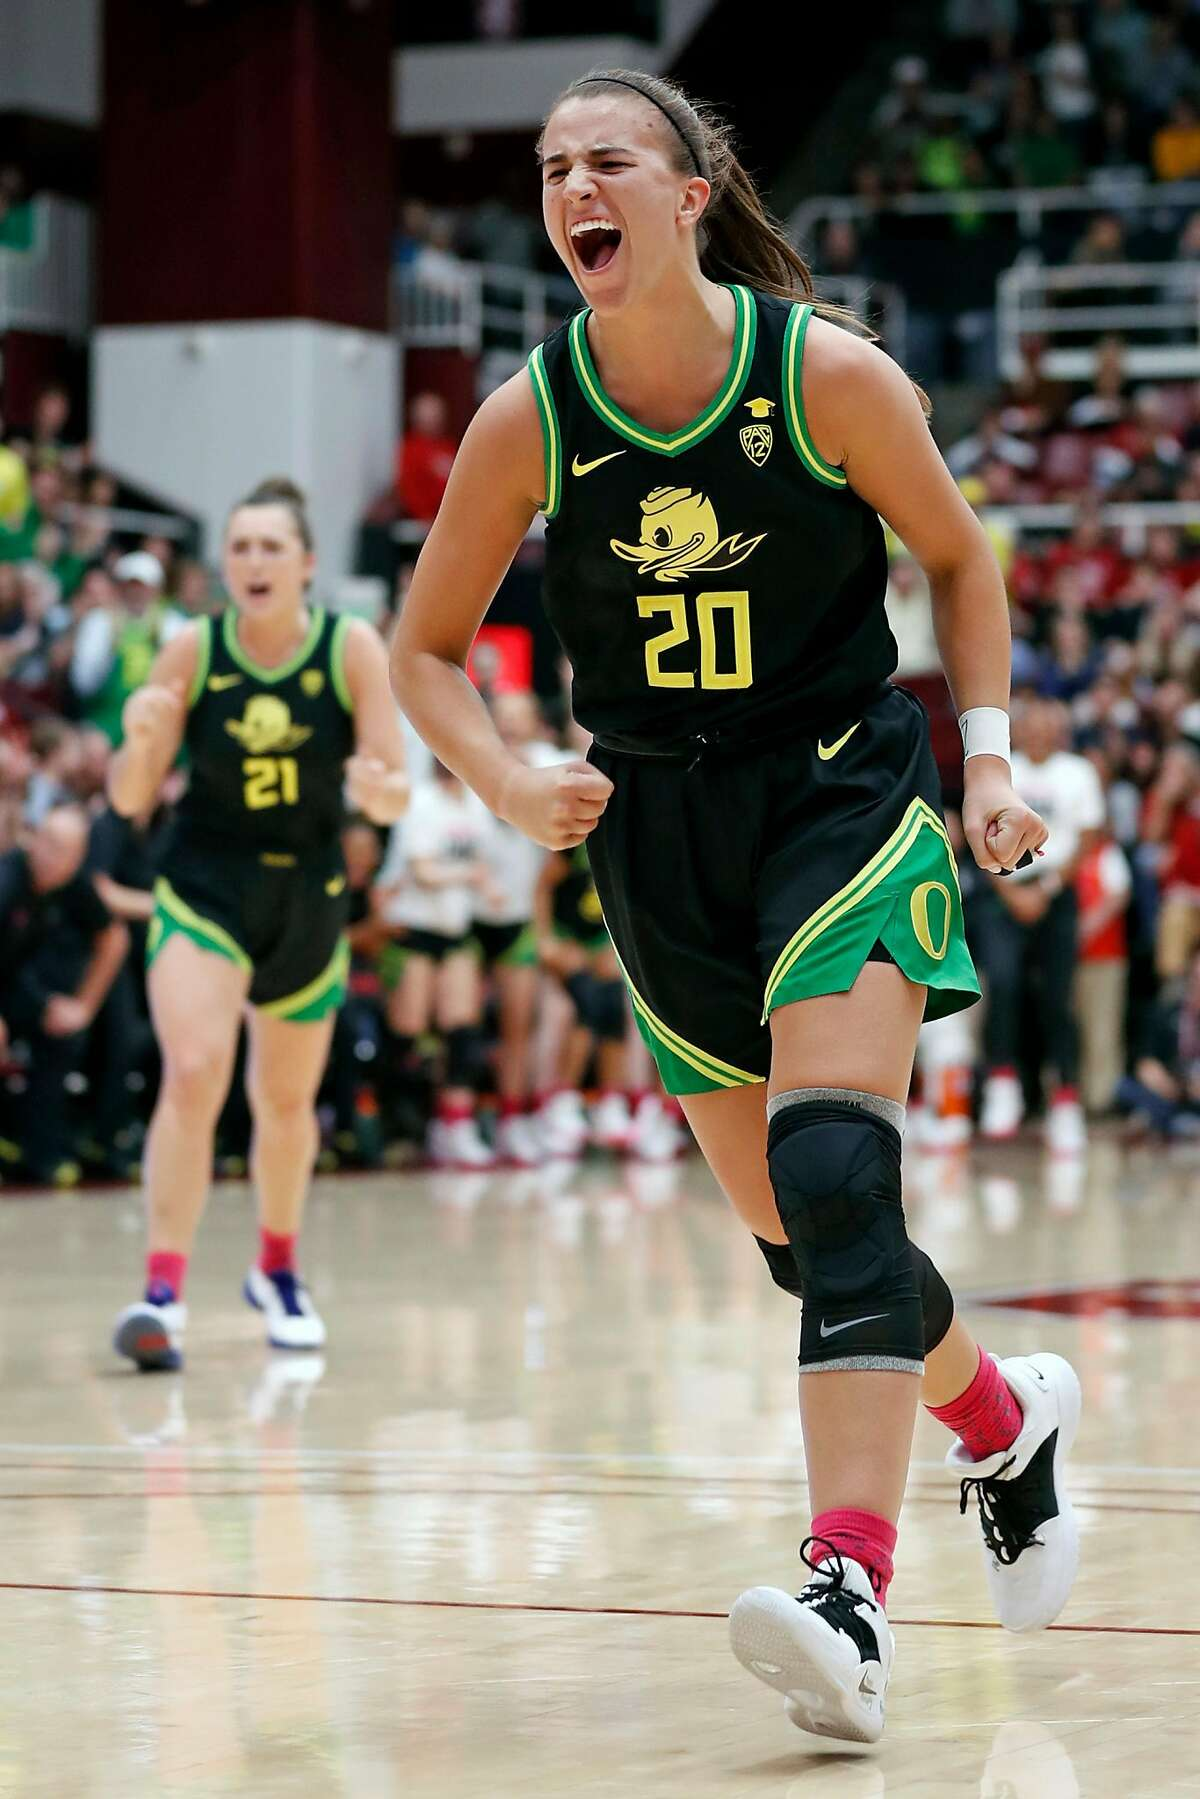 """Oregon""""s Sabrina Ionescu celebrates after a Duck basket and foul against Stanford during Pac 12 women's basketball game at Maples Pavilion in Stanford, Calif., on Monday, February 24, 2020."""